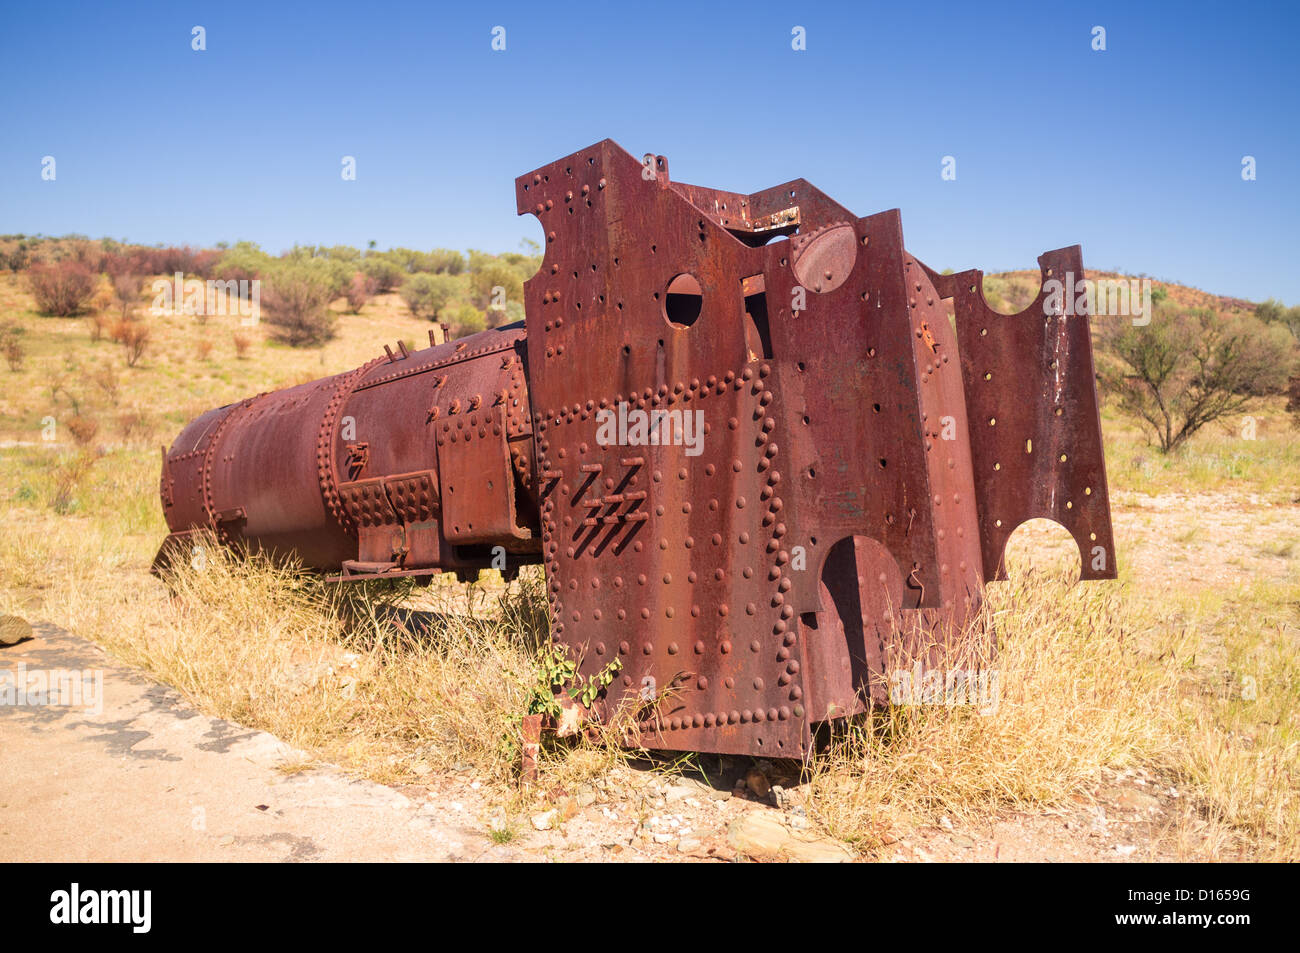 Ruins of an old steam engine at Arltunga Historic Reserve, East MacDonnell Ranges, Northern Territory in the Red - Stock Image